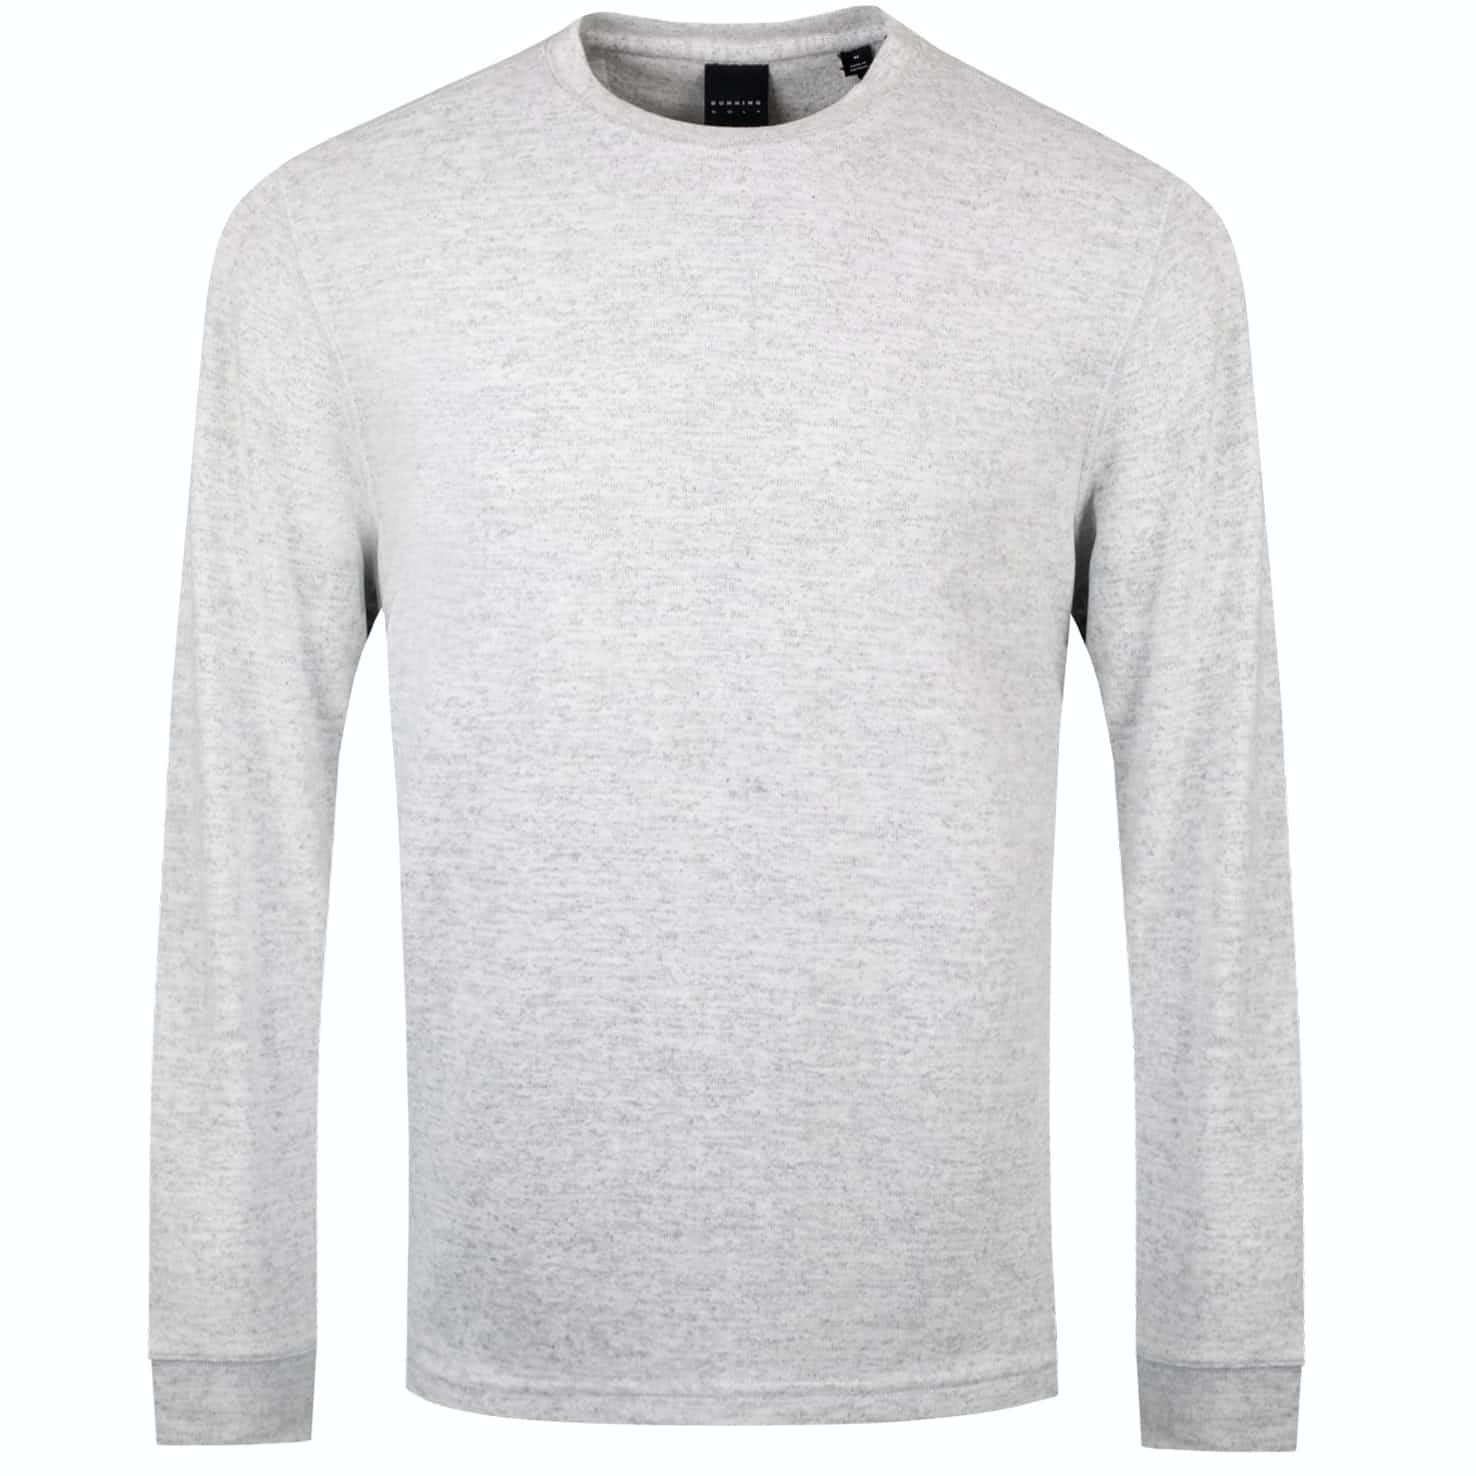 Stirling LS Crew Light Grey Heather - SS19